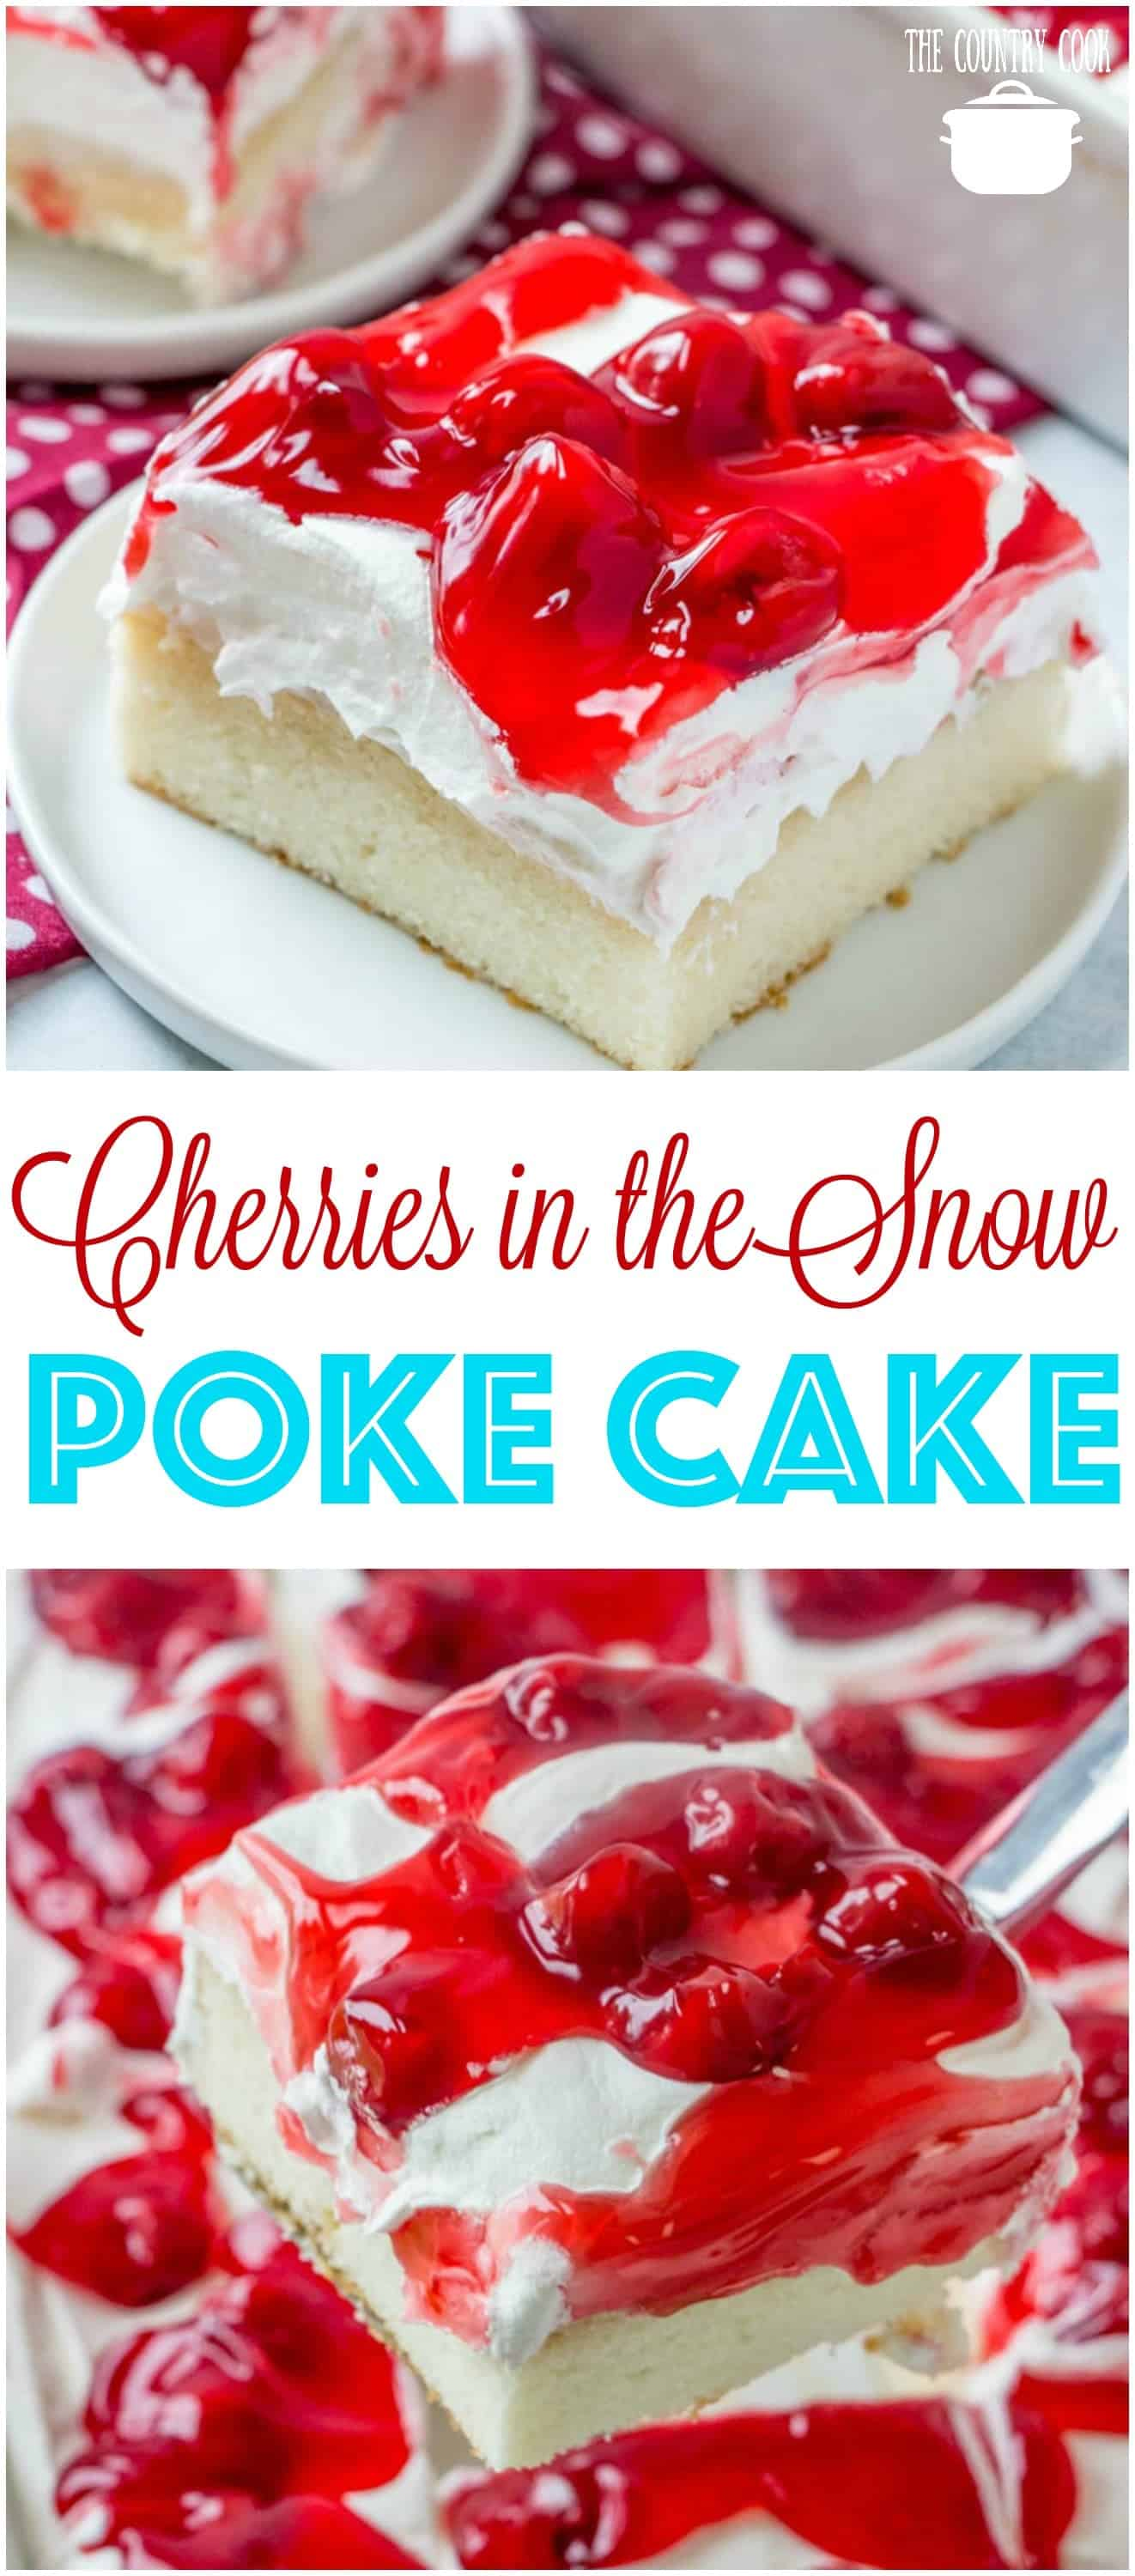 Cherries In The Snow Poke Cake Recipe